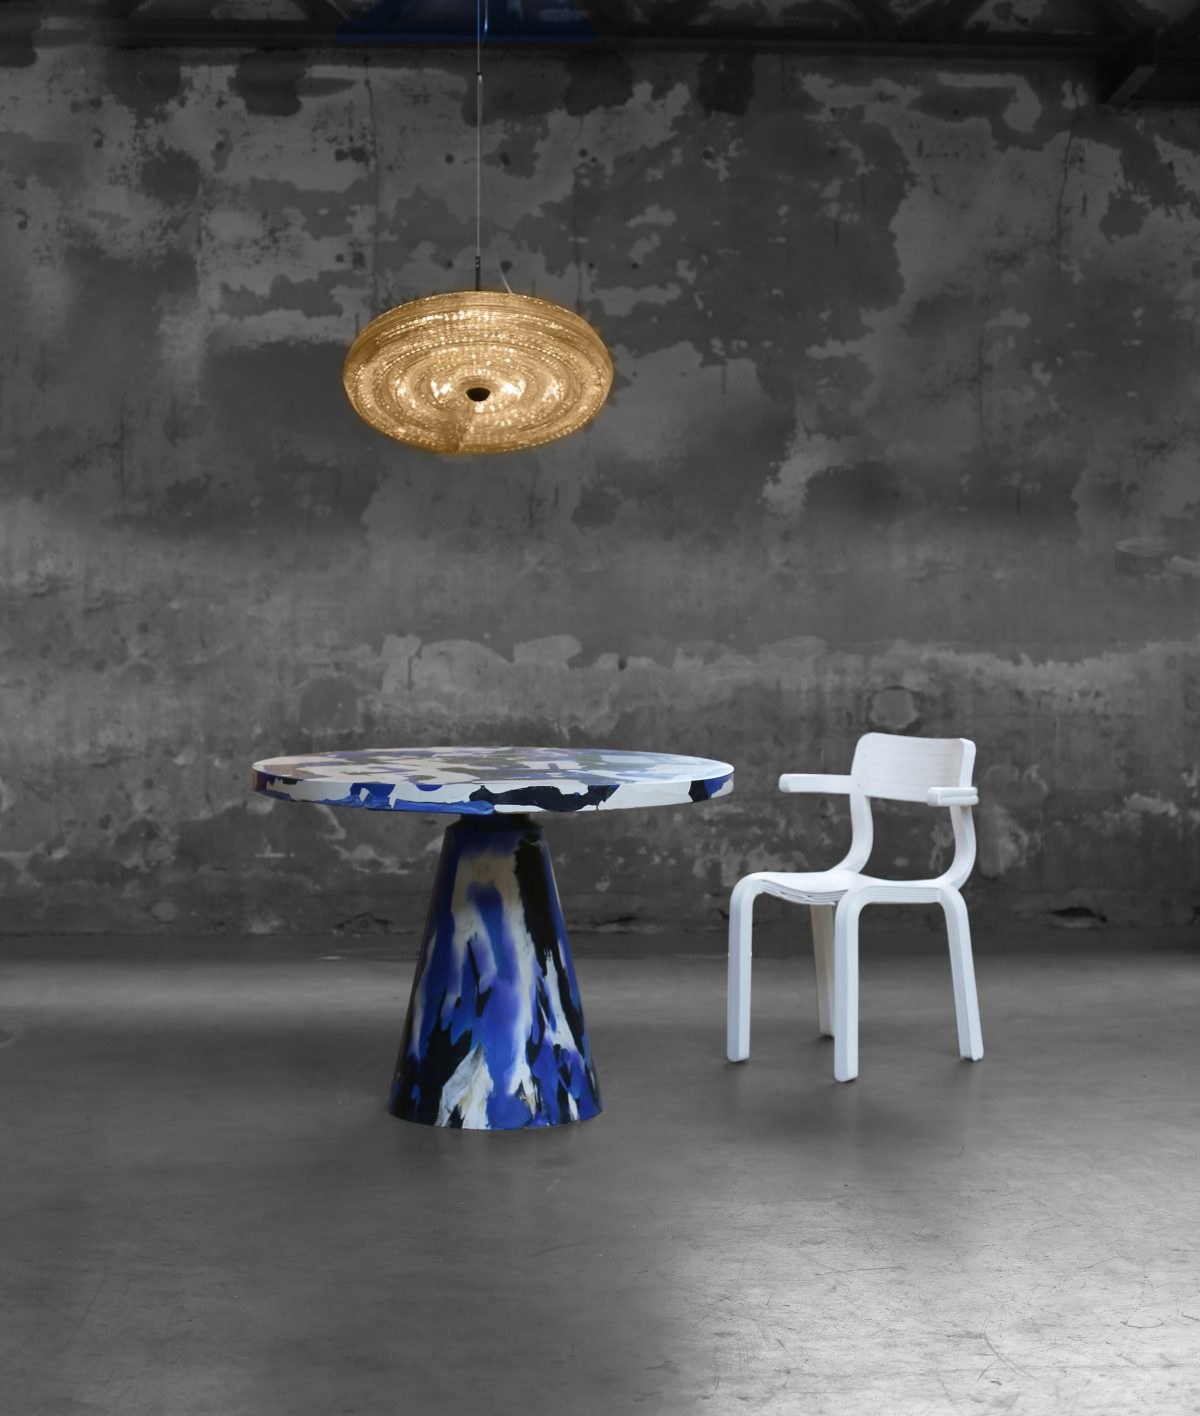 Melting Pot Table kleur Blue Devil, Fresnel Pendant Lamp and RvR Chair natural. Photo Studio Dirk Vander Kooij